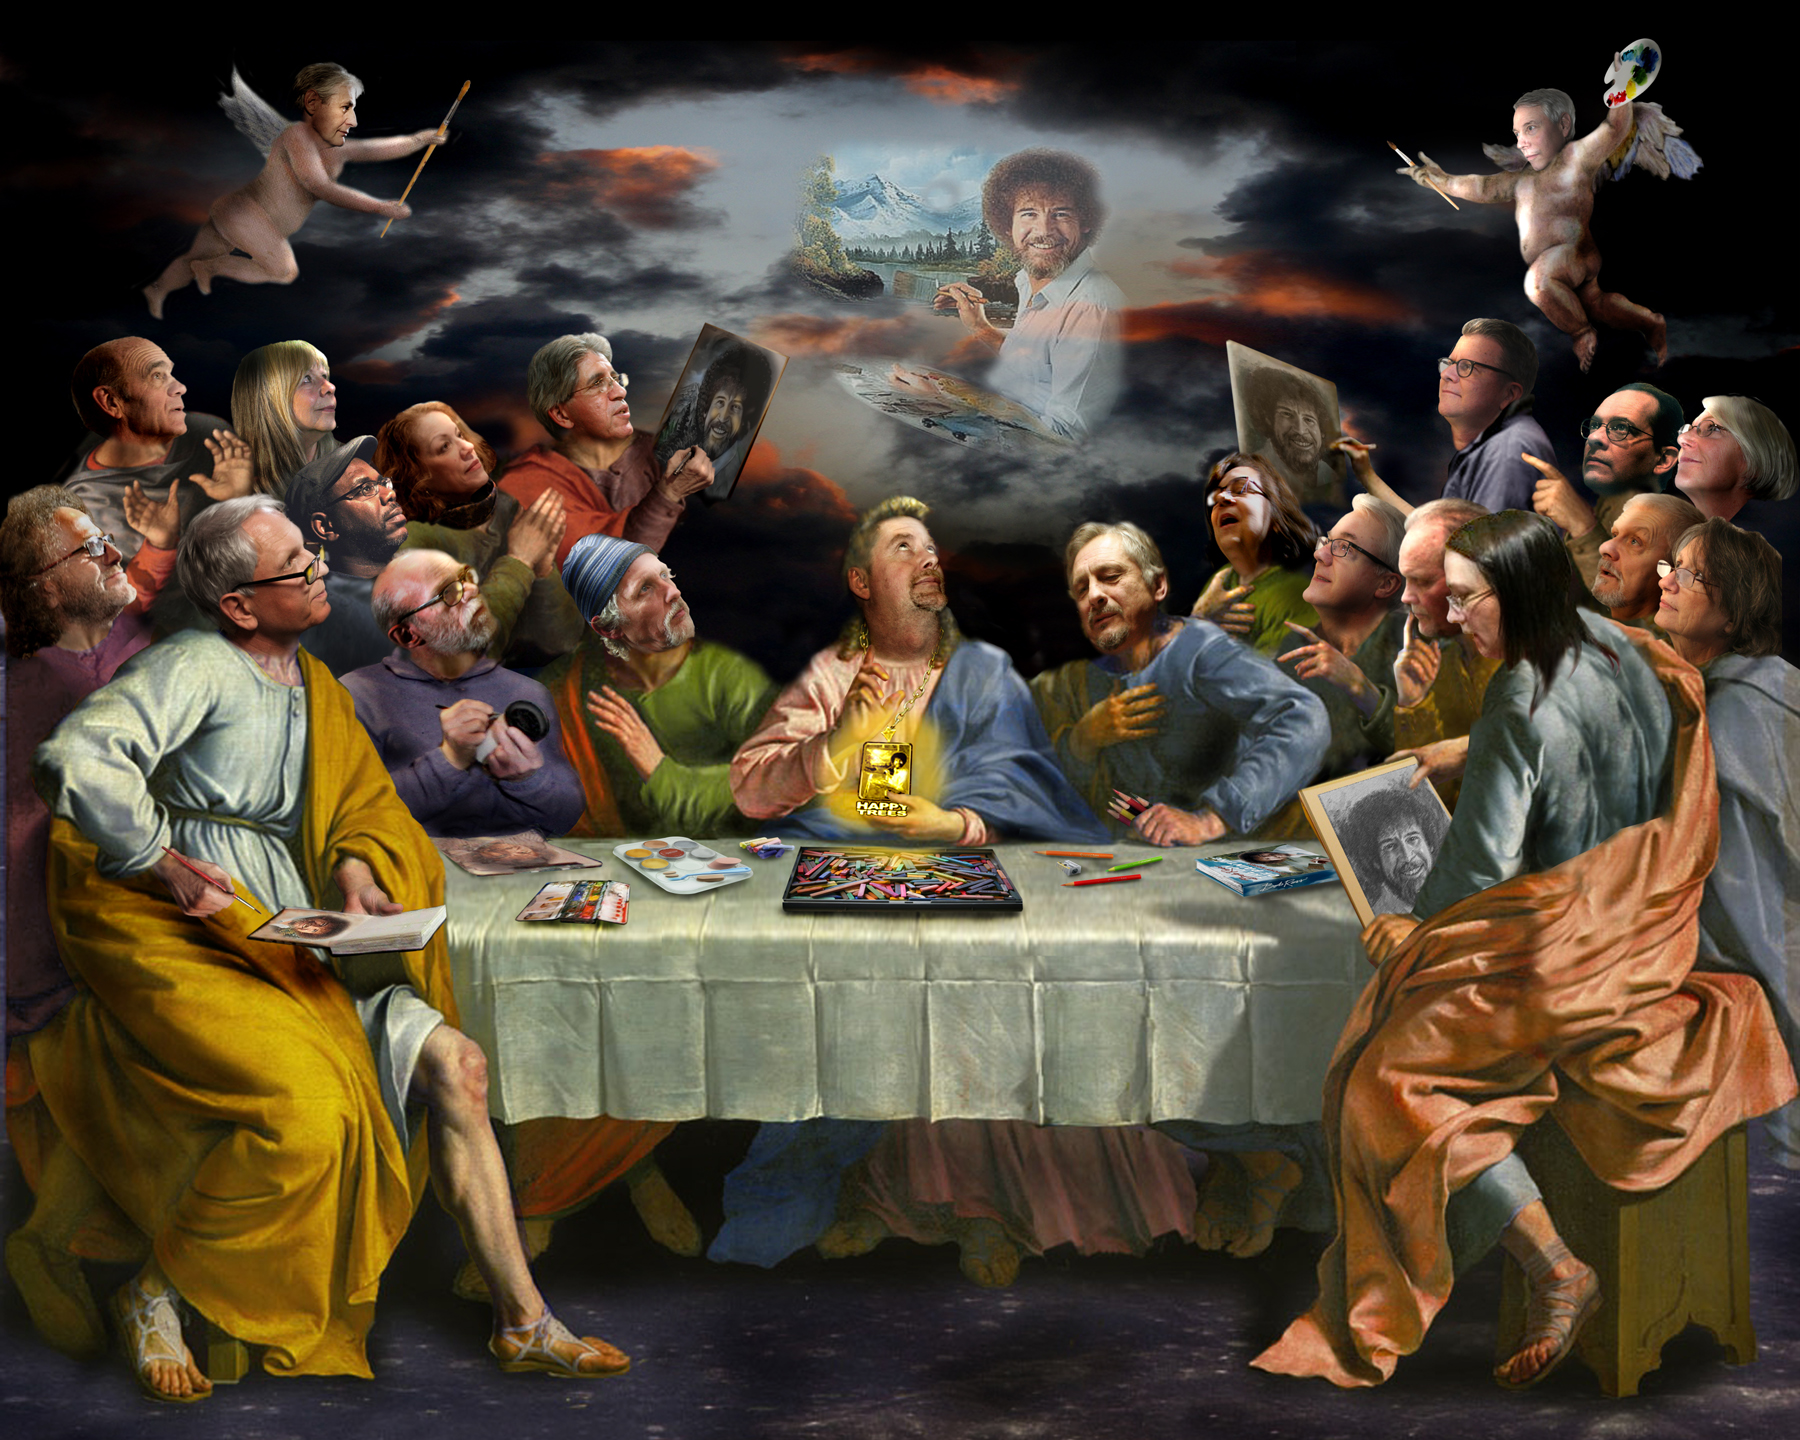 The Pretentious Cleveland Portrait Artists Last Supper. Photoshop courtesy of Brian Pierce.